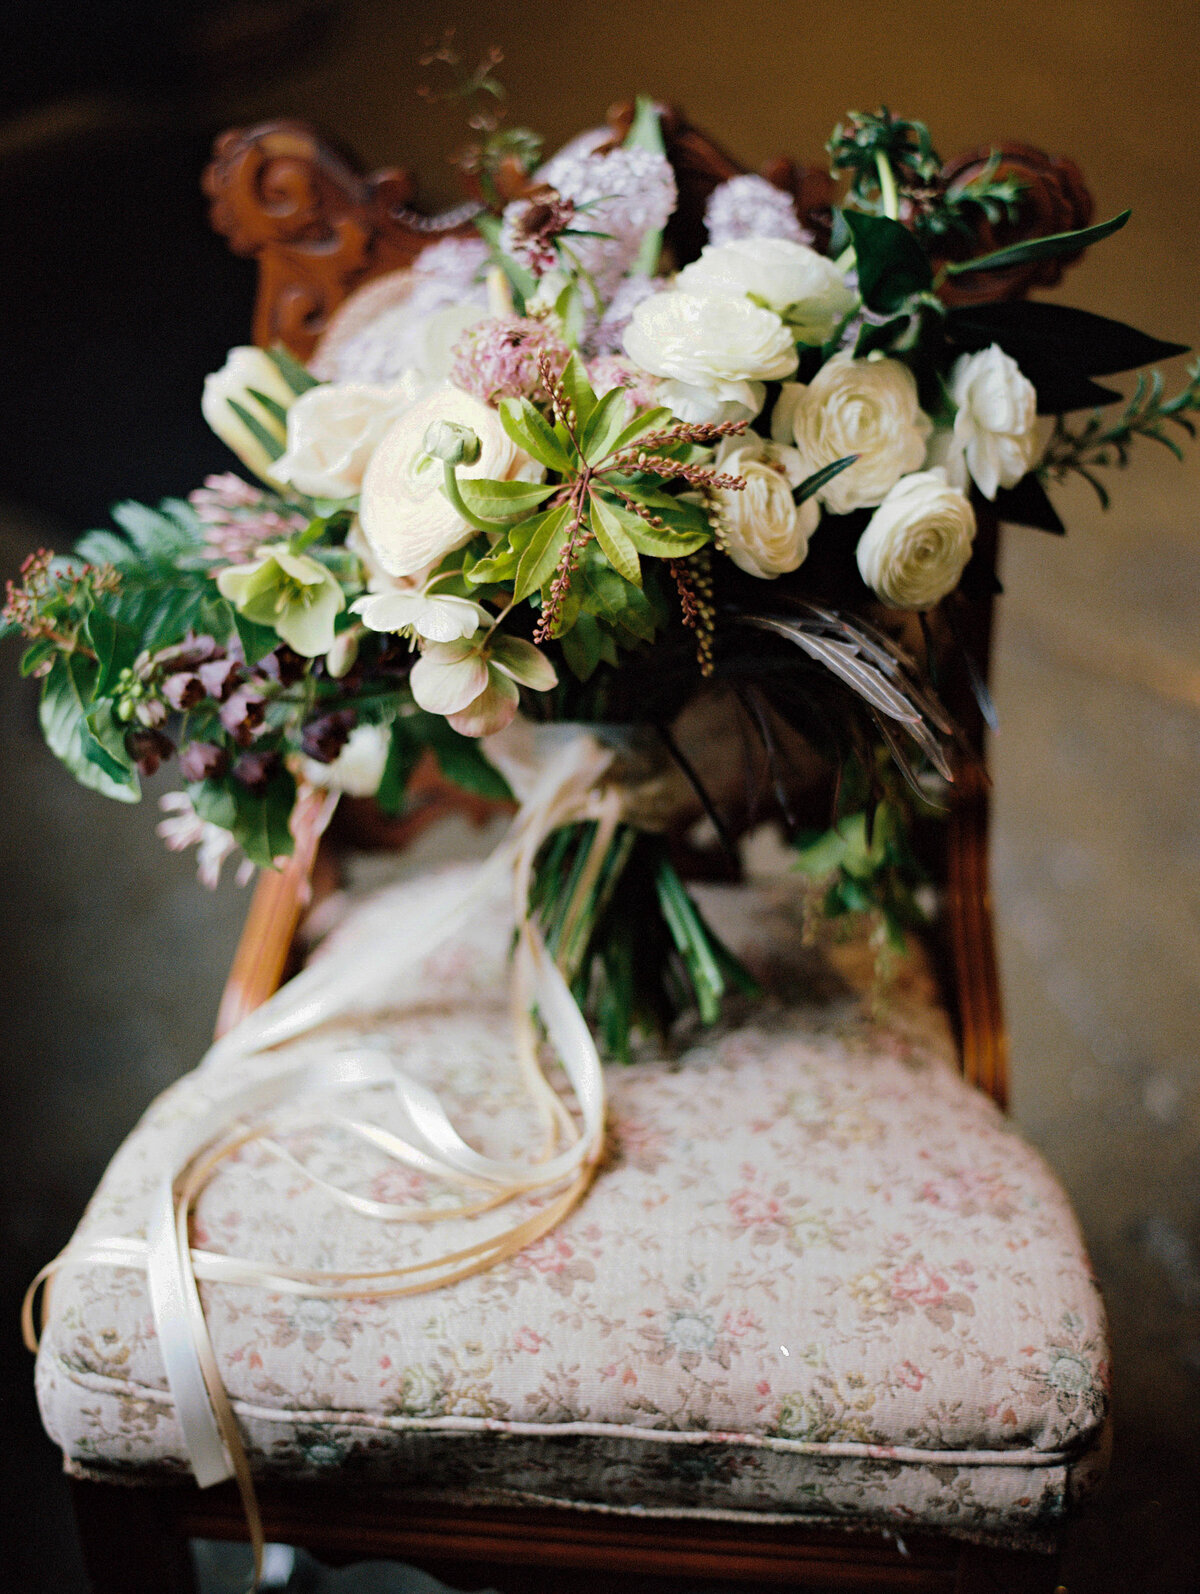 brides bouquet on a chair